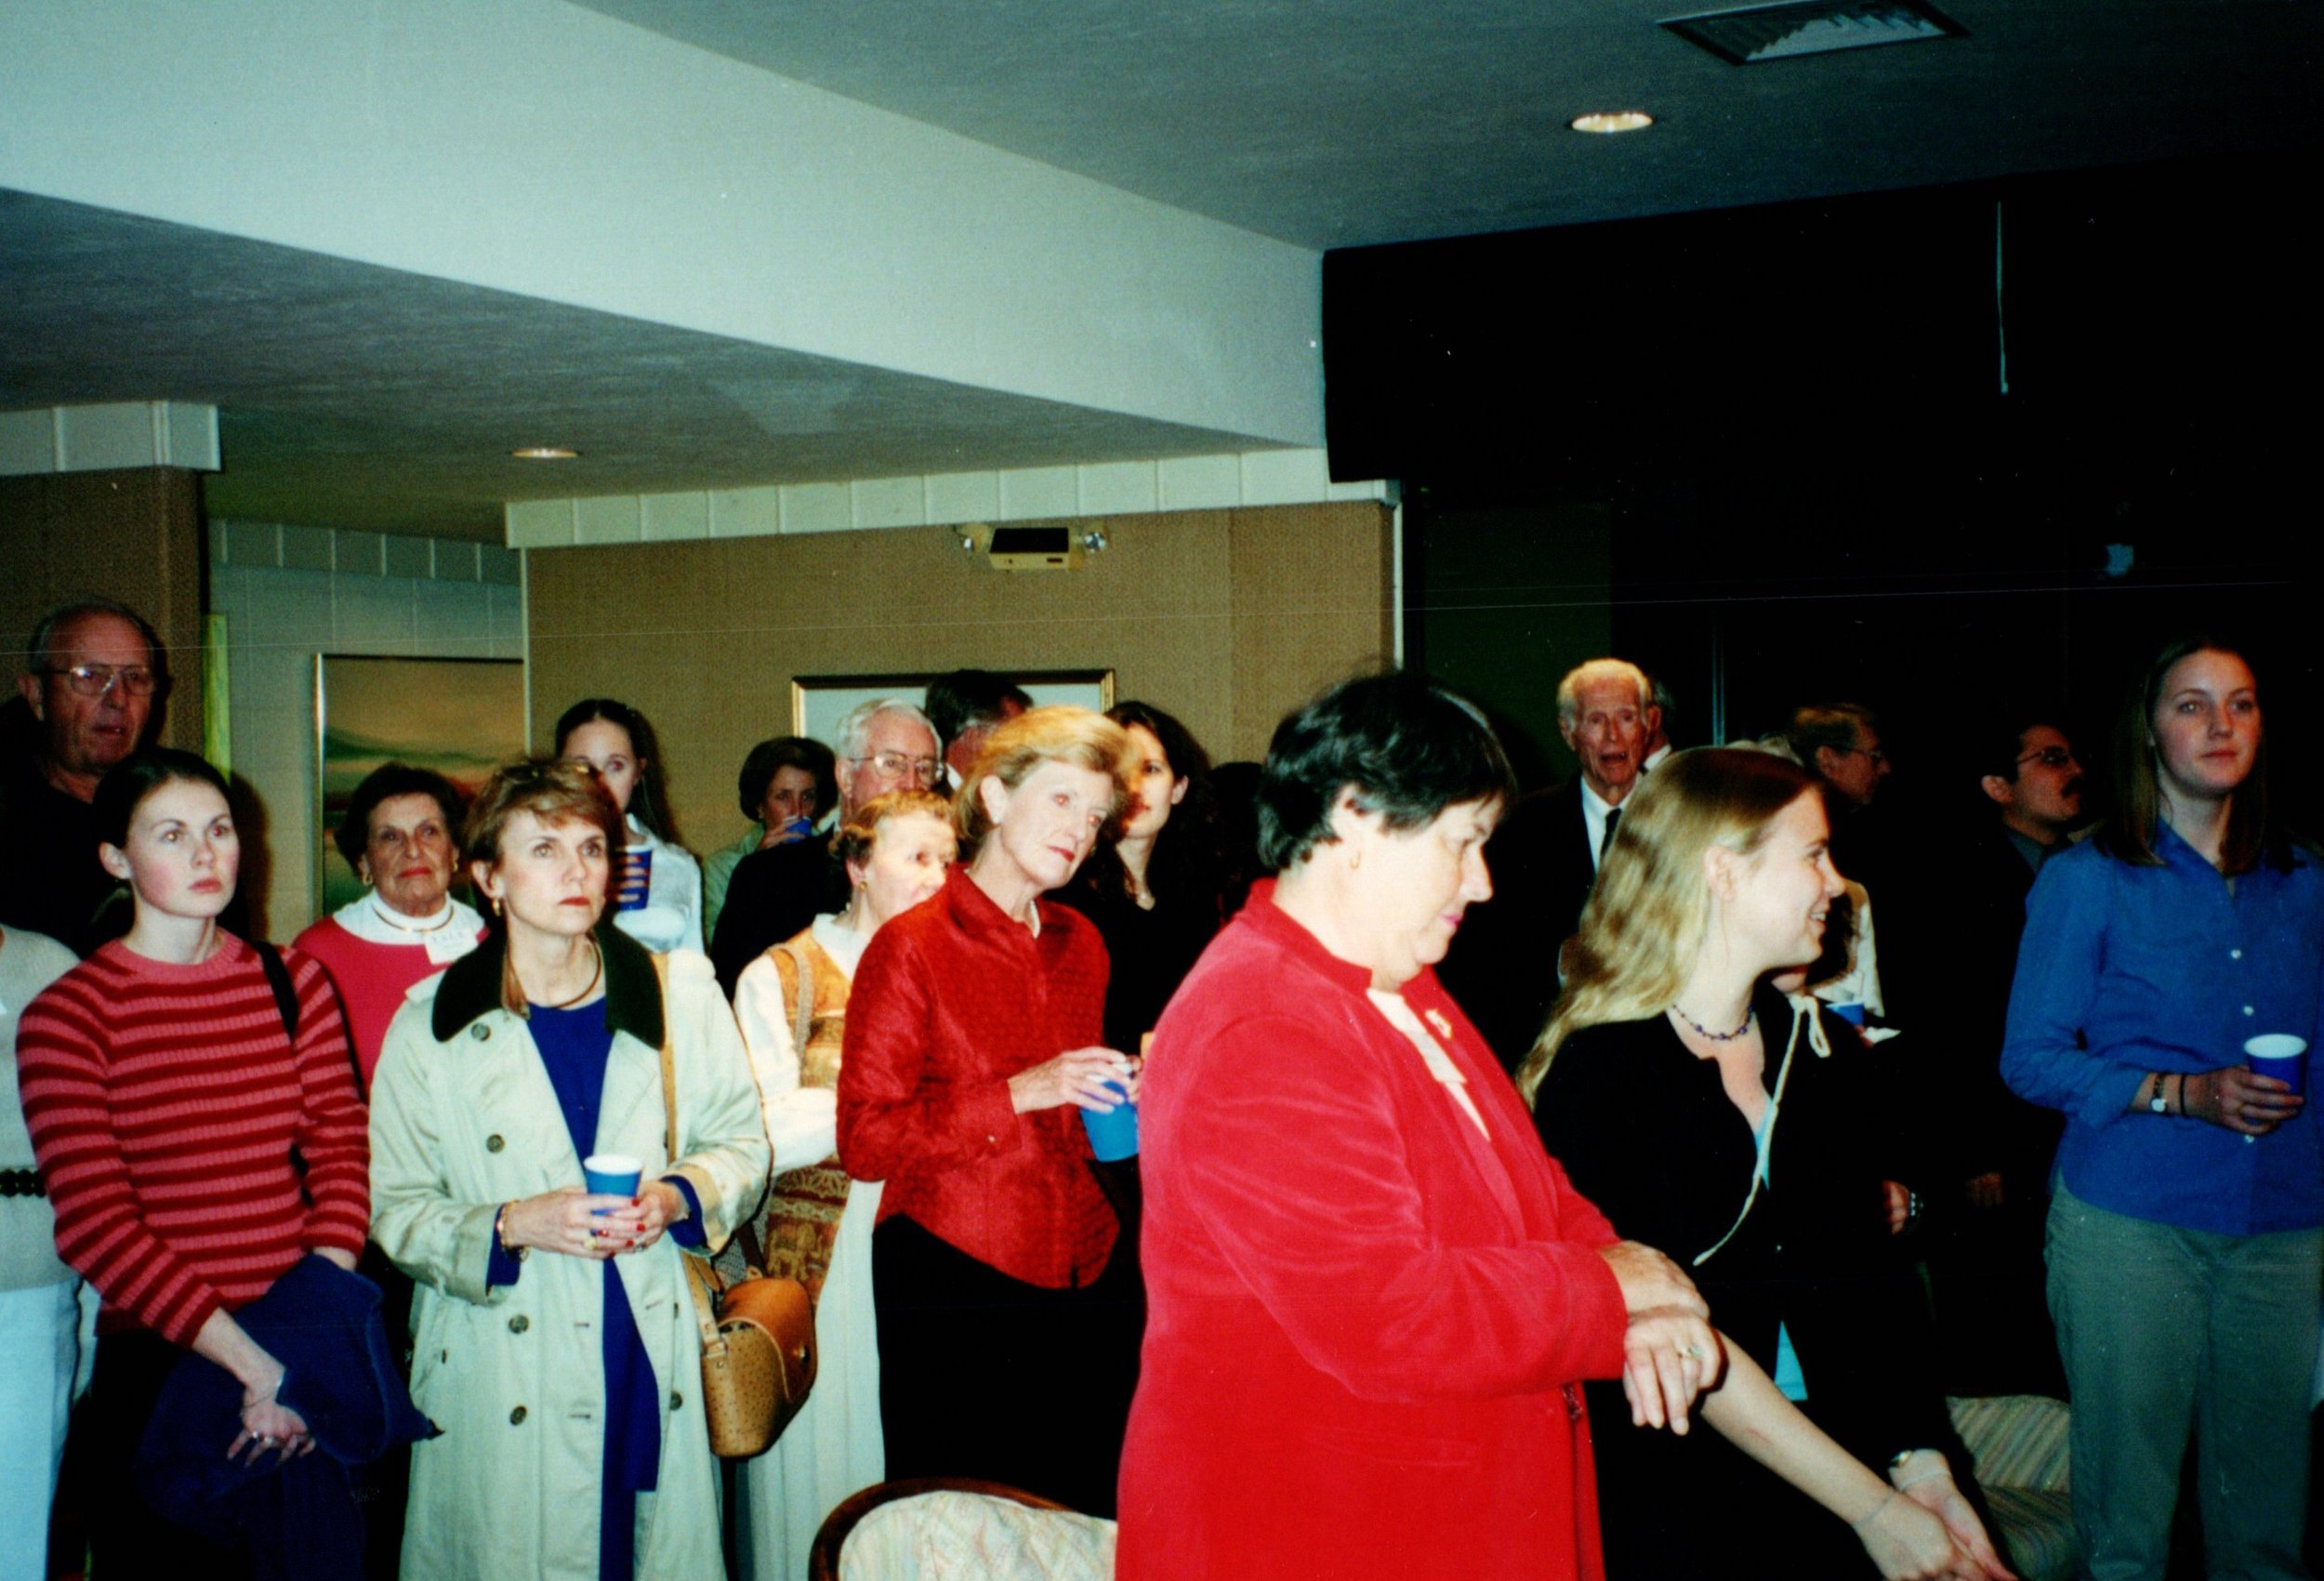 1_10_2002- YALE GLEE CLUB CONCERT - ST. JOHN'S CATHOLIC CHURCH 16.jpg